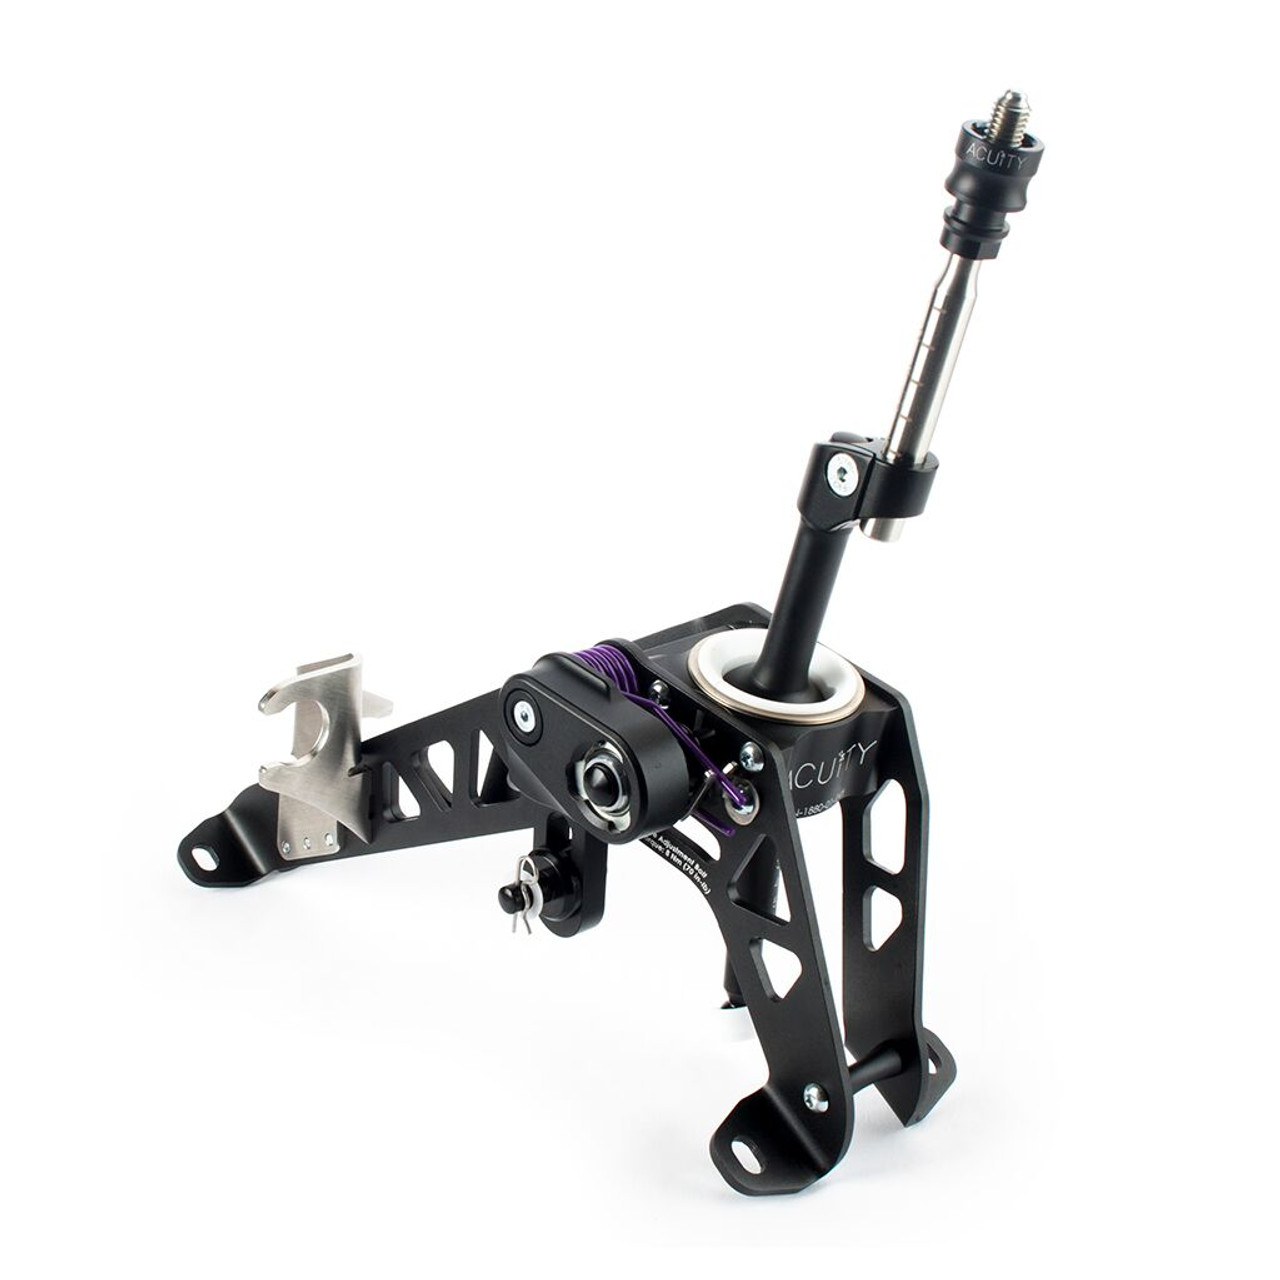 Acuity Instruments 2012-2015 Civic Si Adjustable short shifter